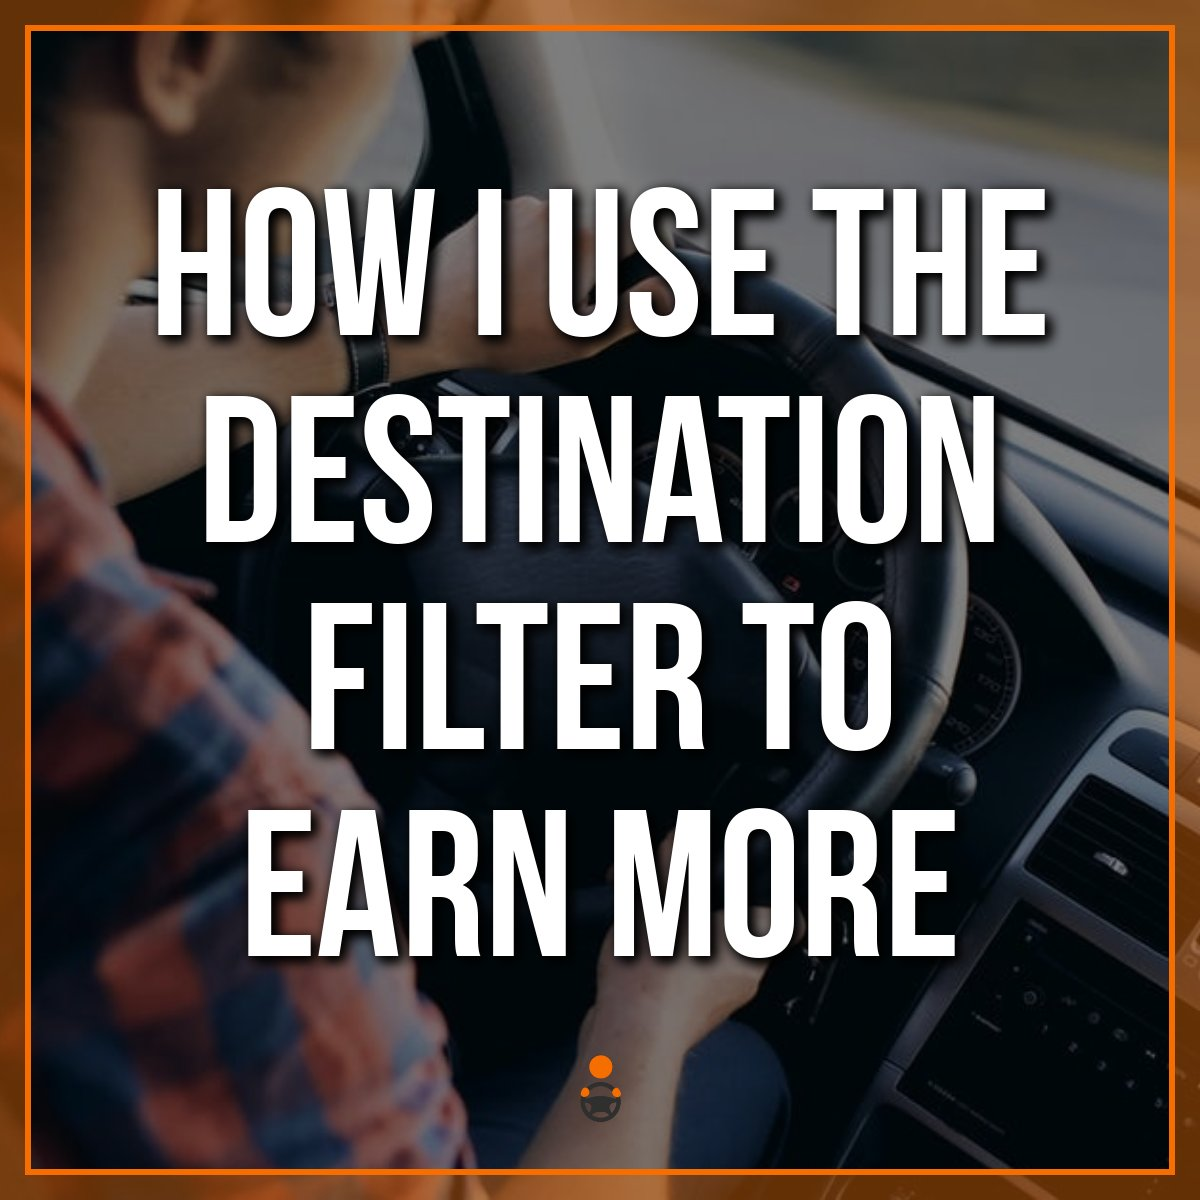 How I Use the Destination Filter to Earn More